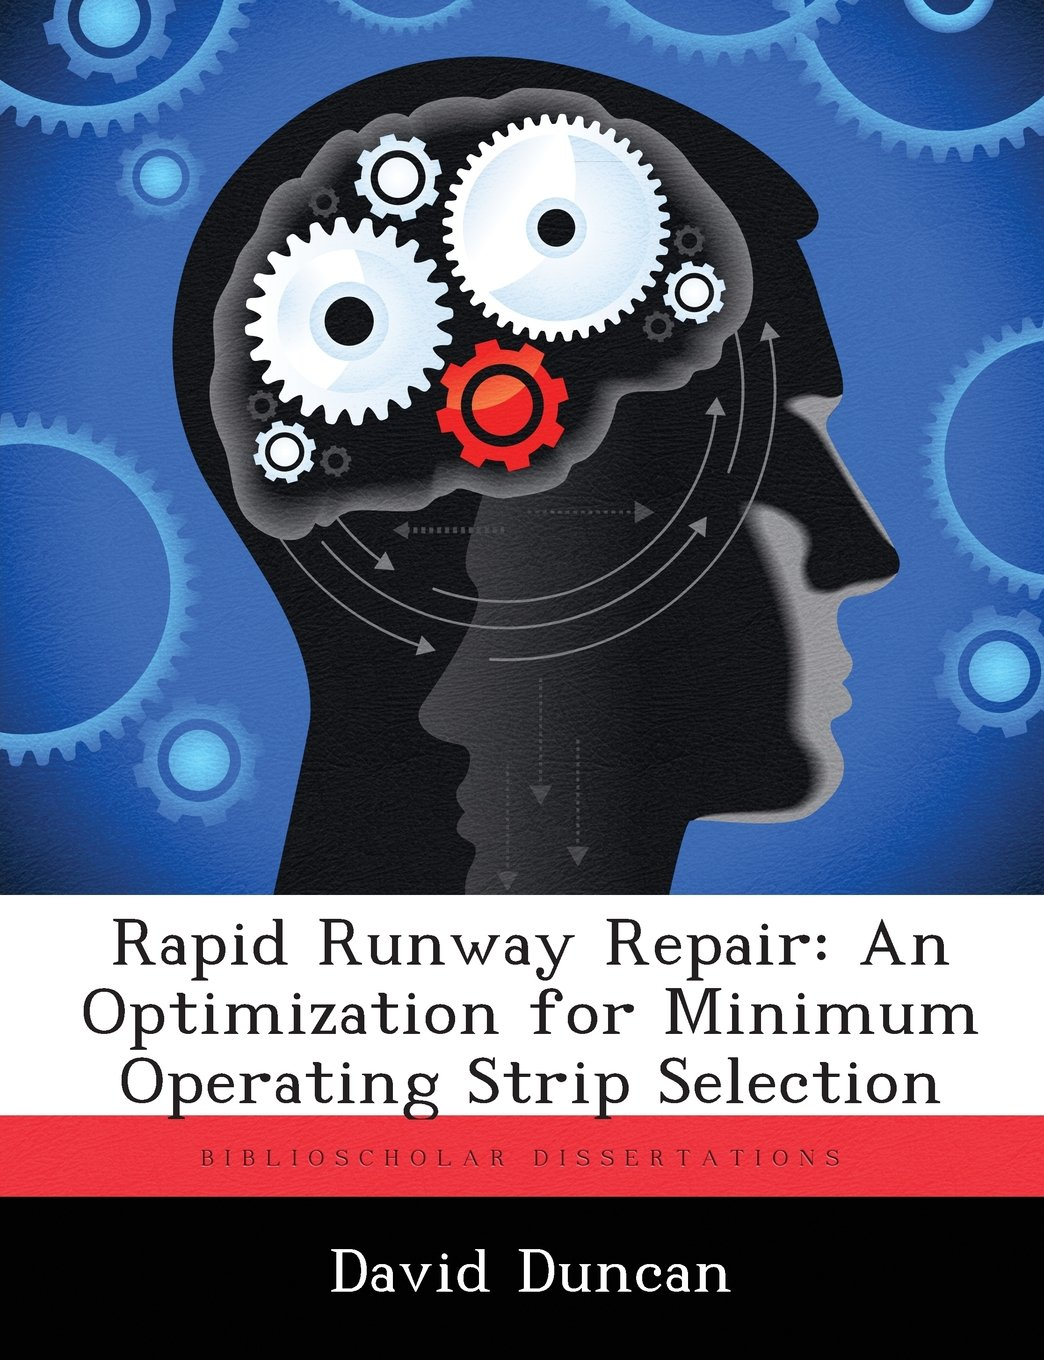 Rapid Runway Repair: An Optimization for Minimum Operating